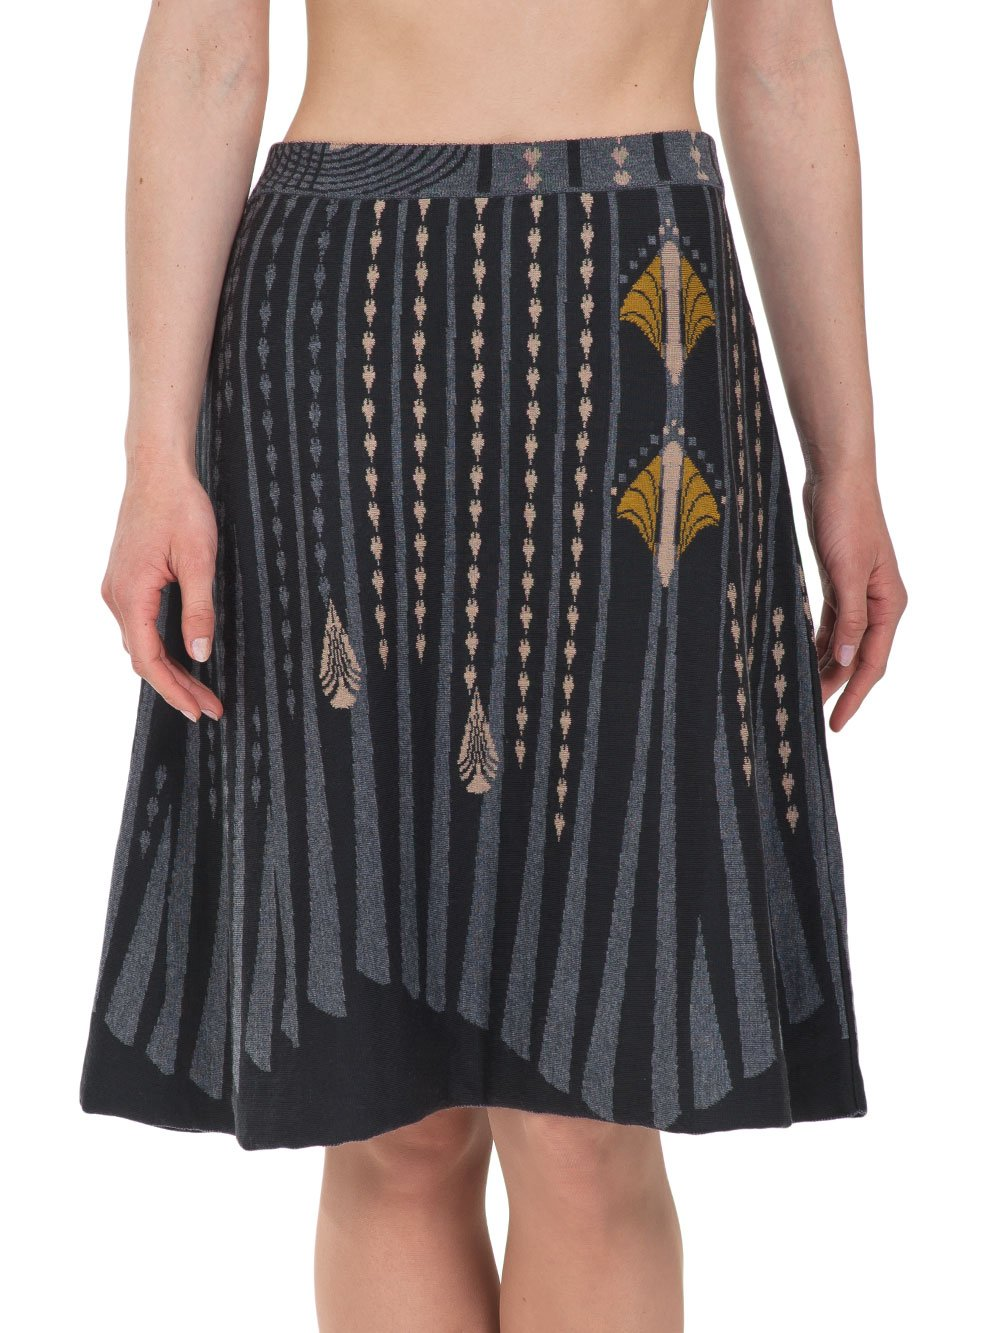 IVKO Jacquard Skirt with Relief Motifs, Anthracite (US 6 - EUR 36)